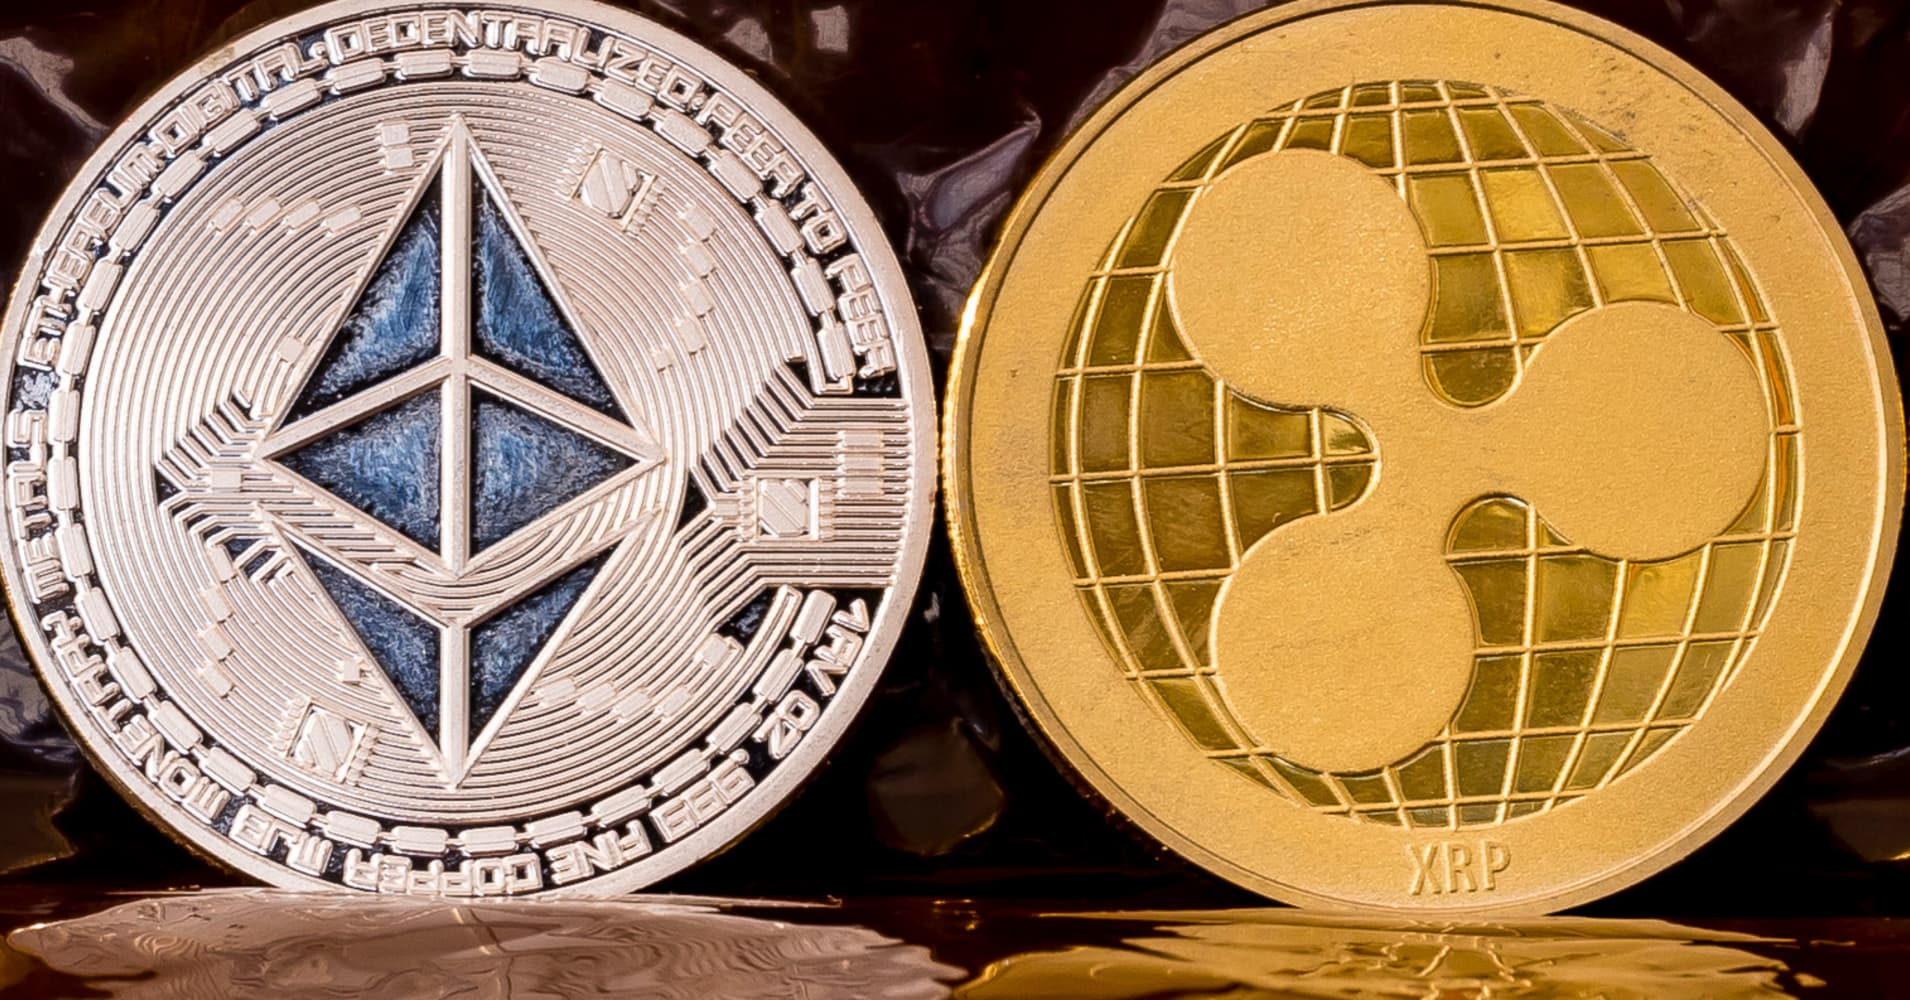 When is the cryptocurrency market open